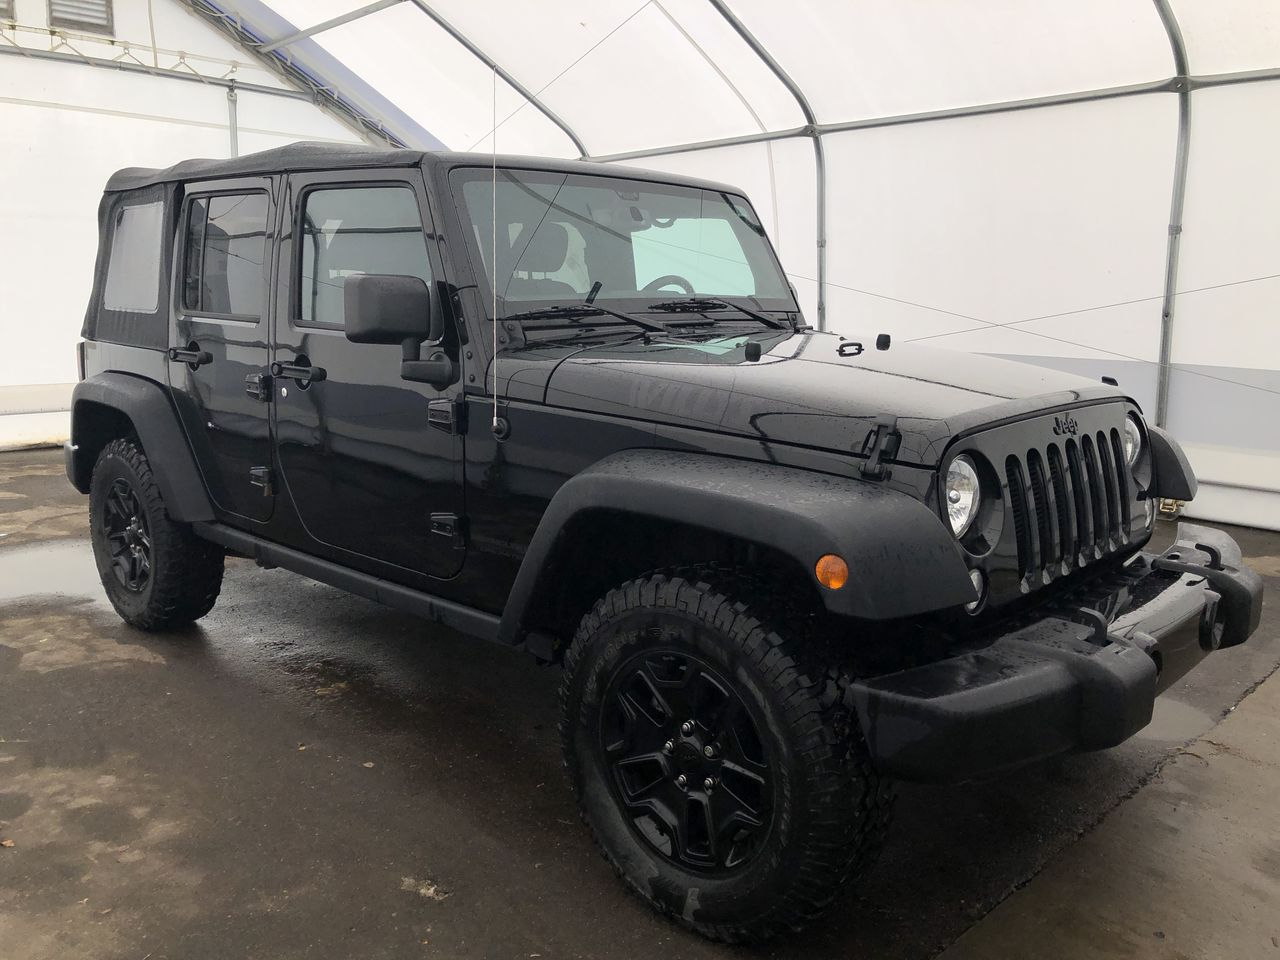 2018 Jeep Wrangler JK Unlimited Willys Wheeler (N6430A) Main Image